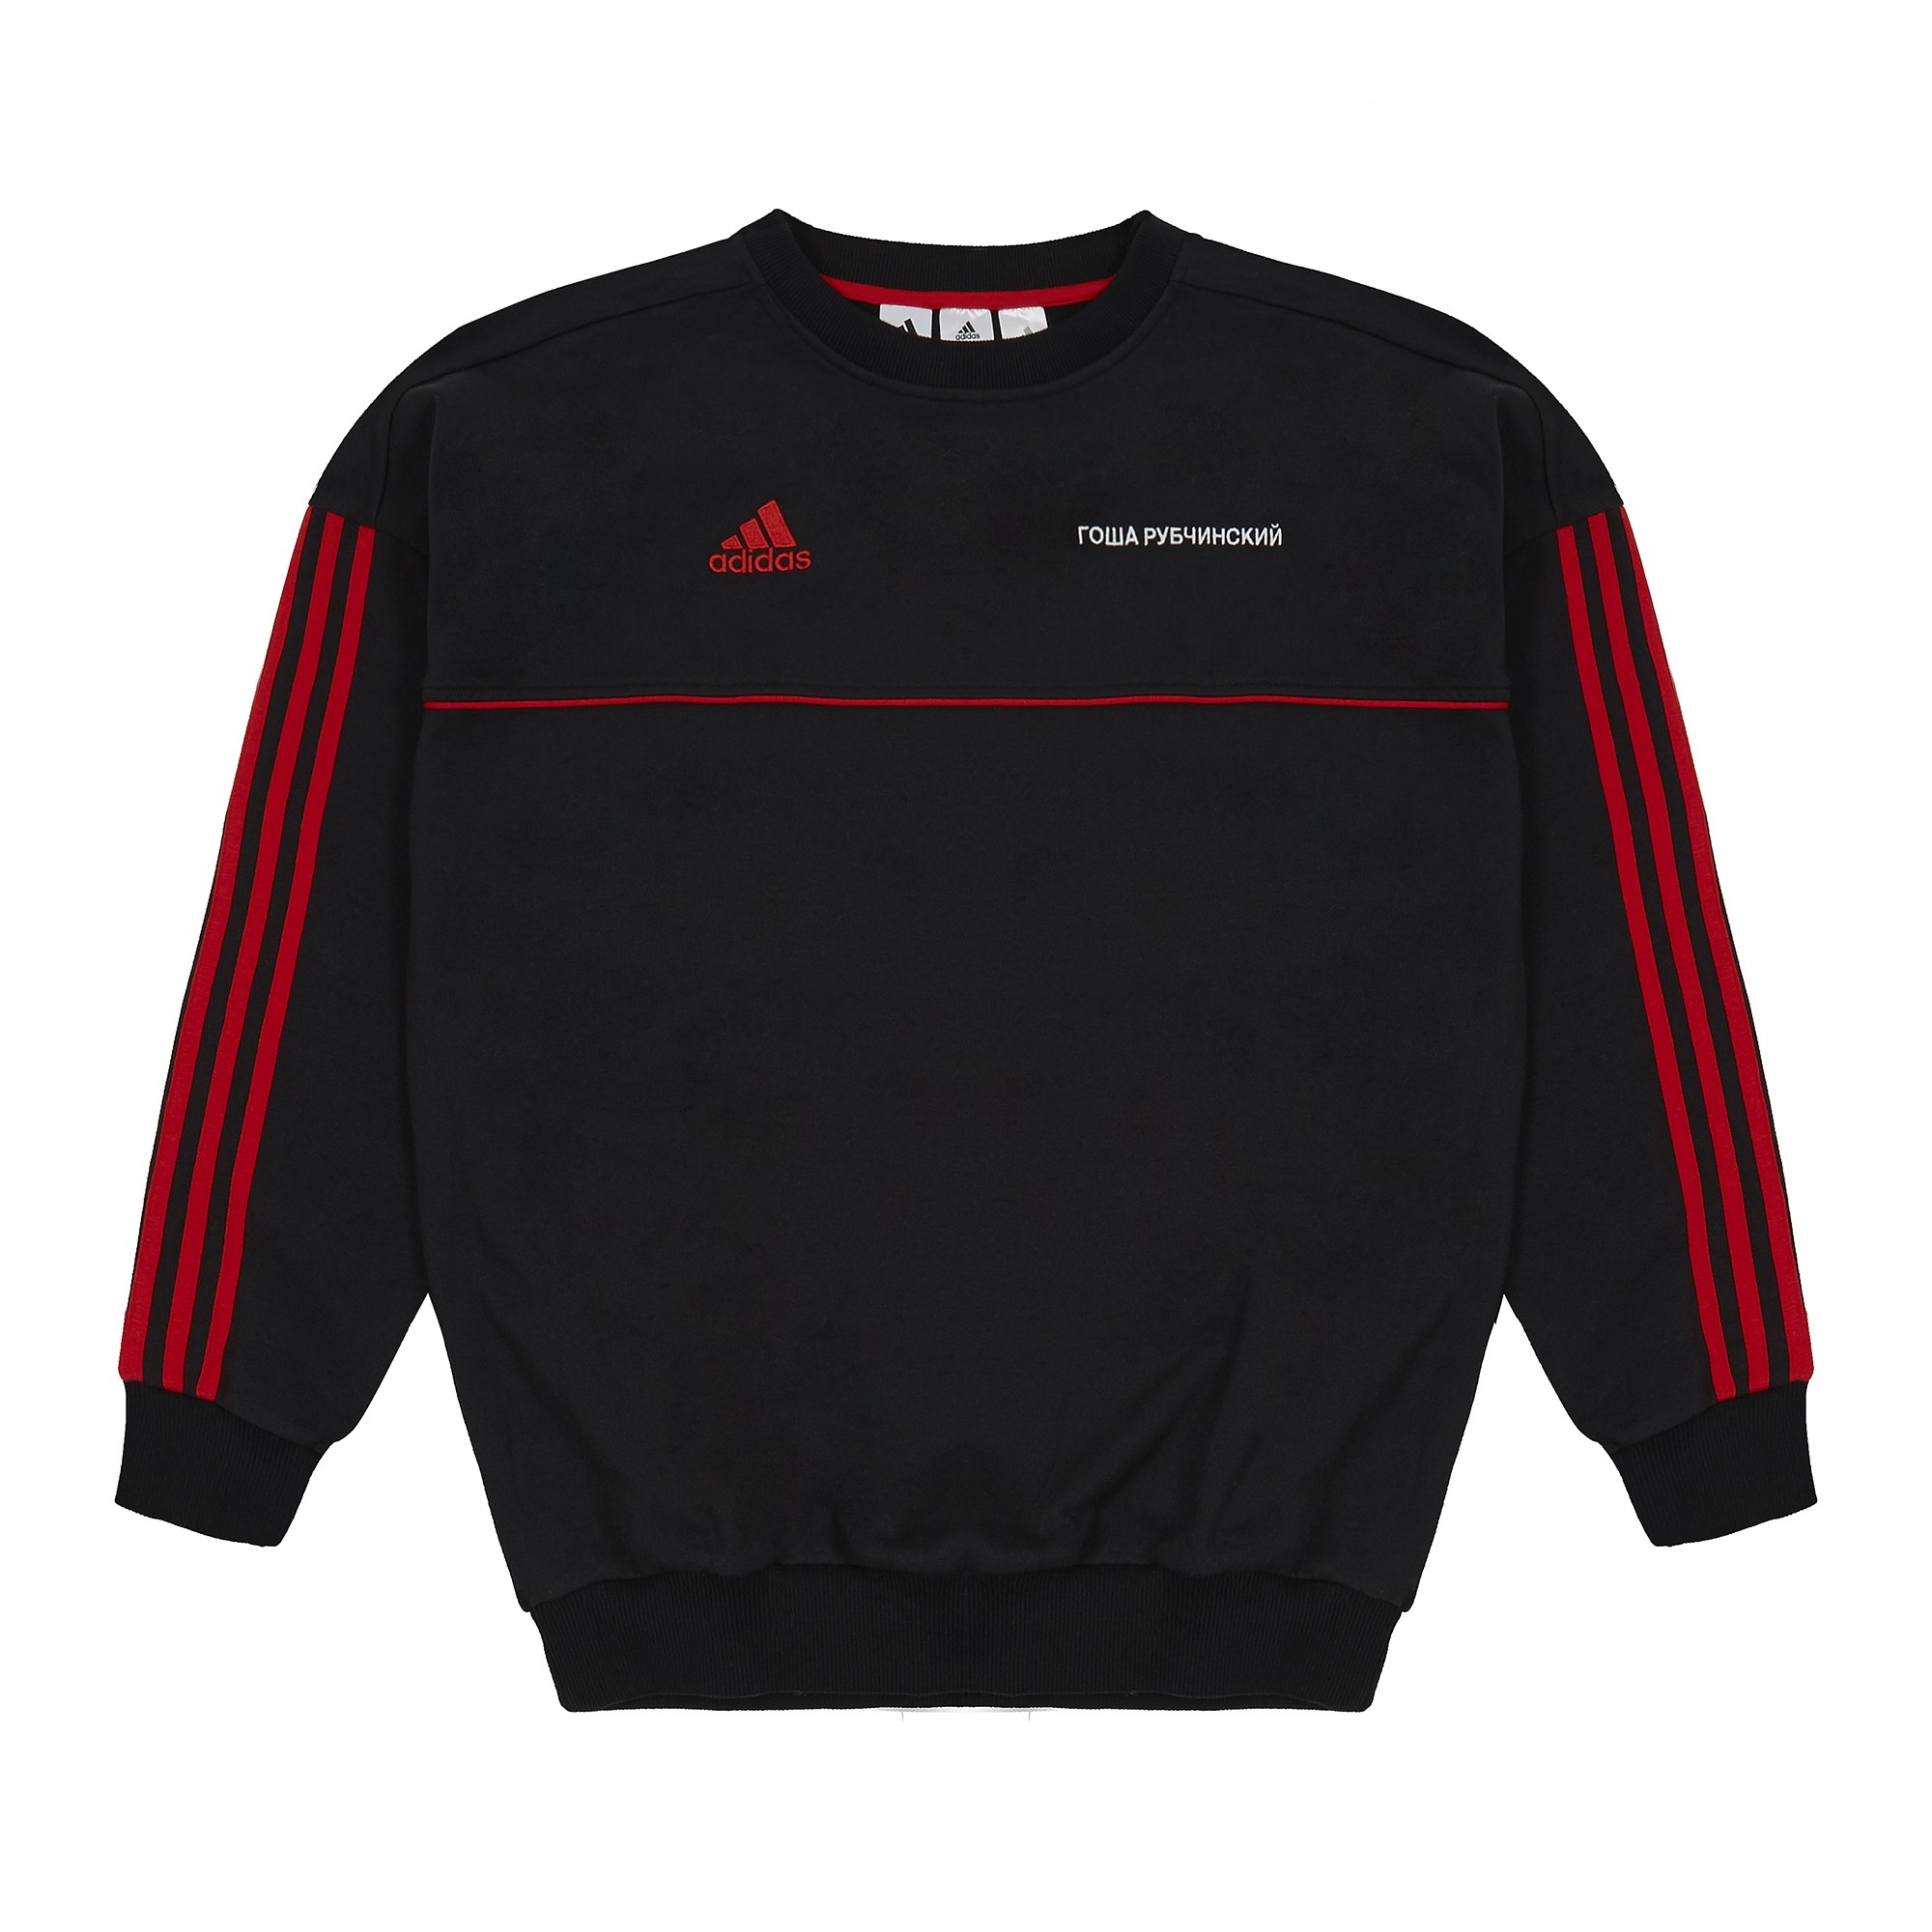 Gosha x Adidas Sweater SchwarzRot? (Mode, Fashion)